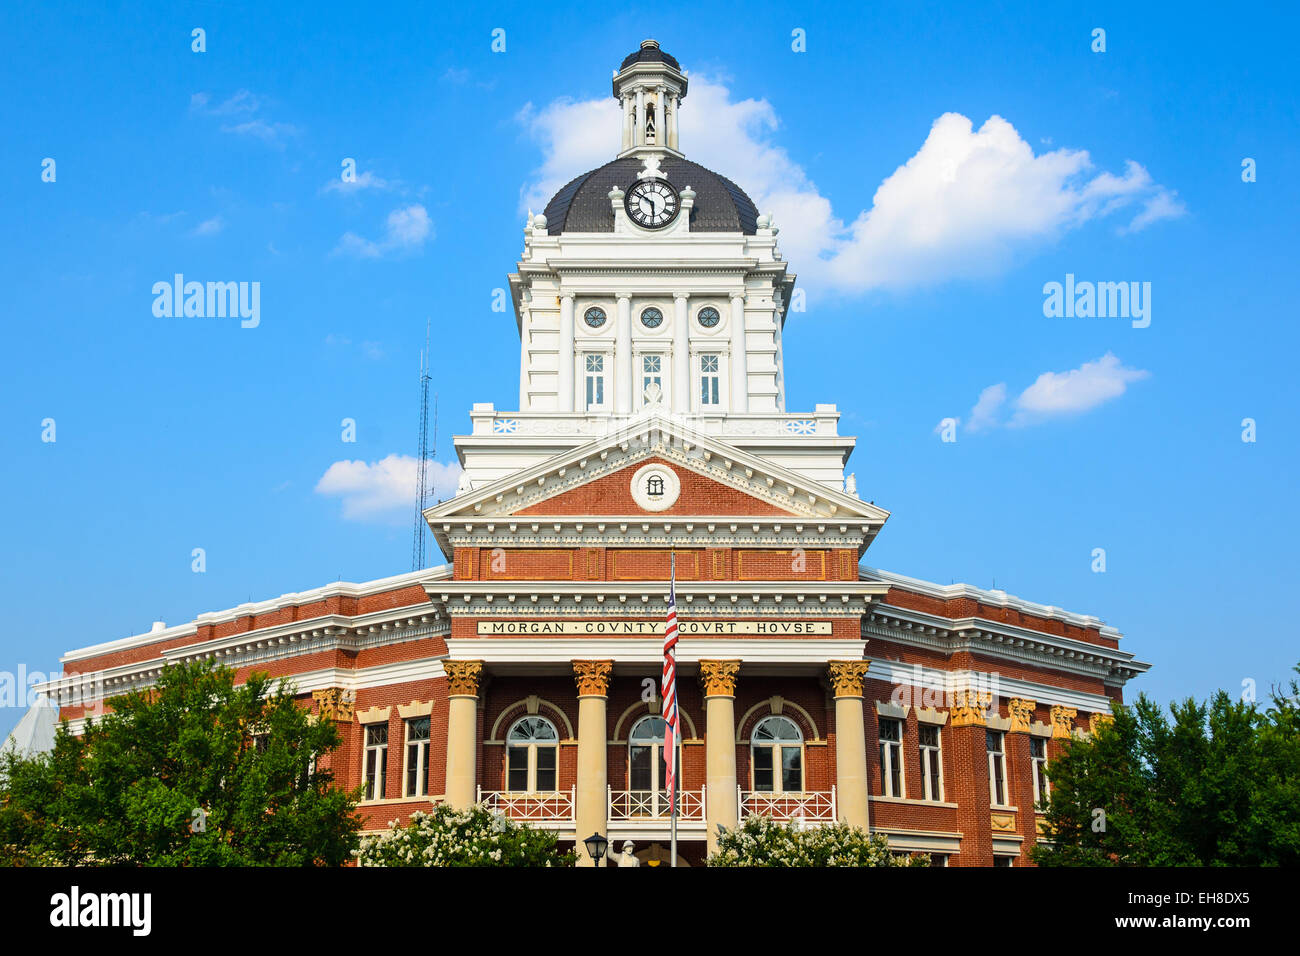 Morgan County Courthouse in Madison, Morgan County, Georgia, USA. - Stock Image